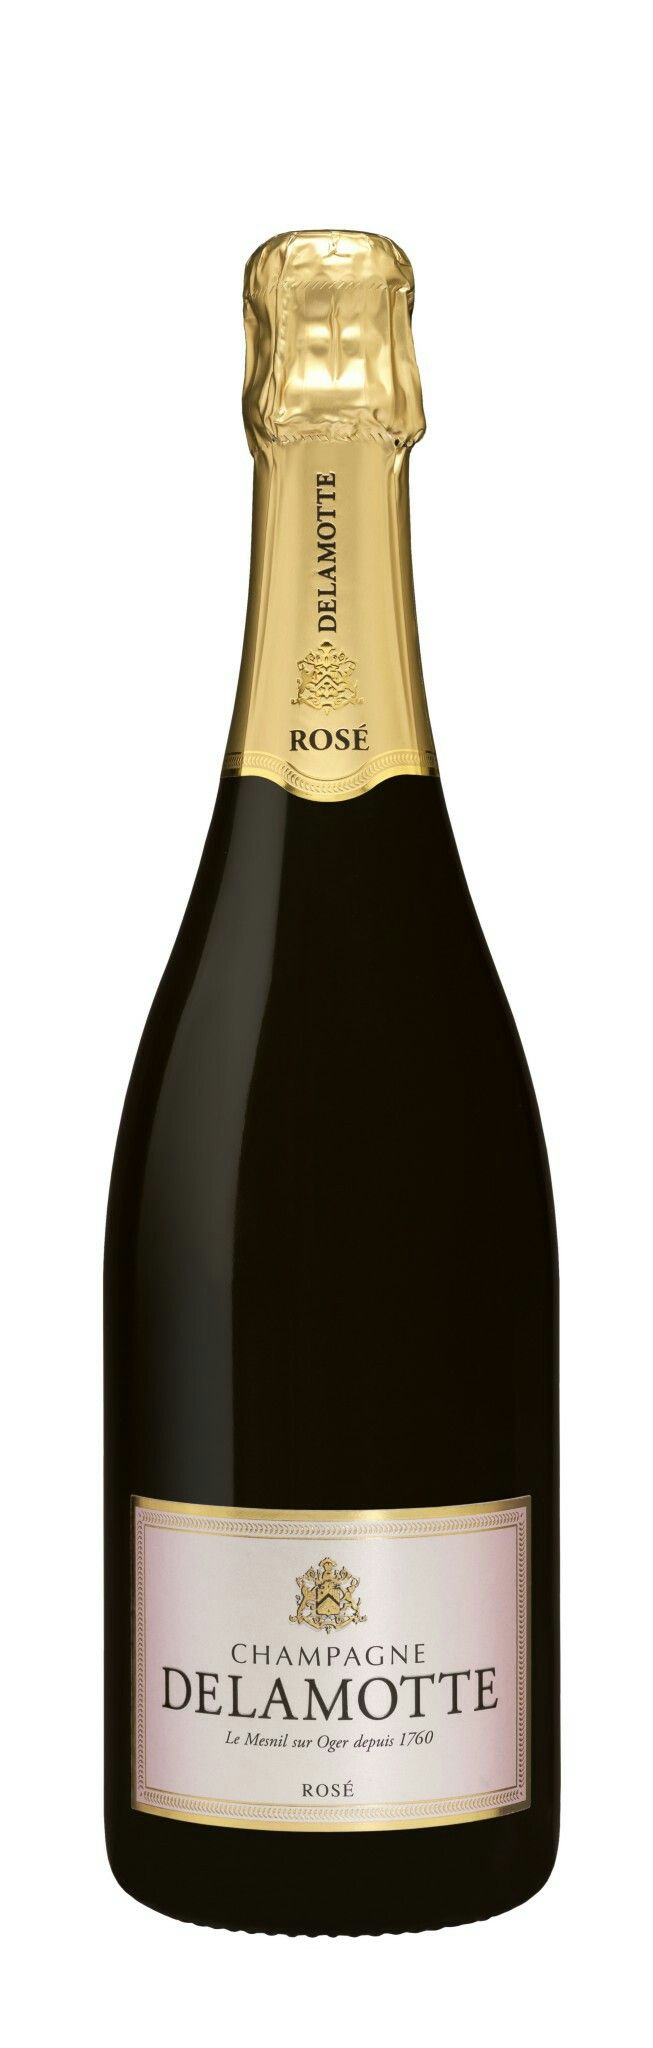 17 best images about 365 days of ros on pinterest for Champagne delamotte